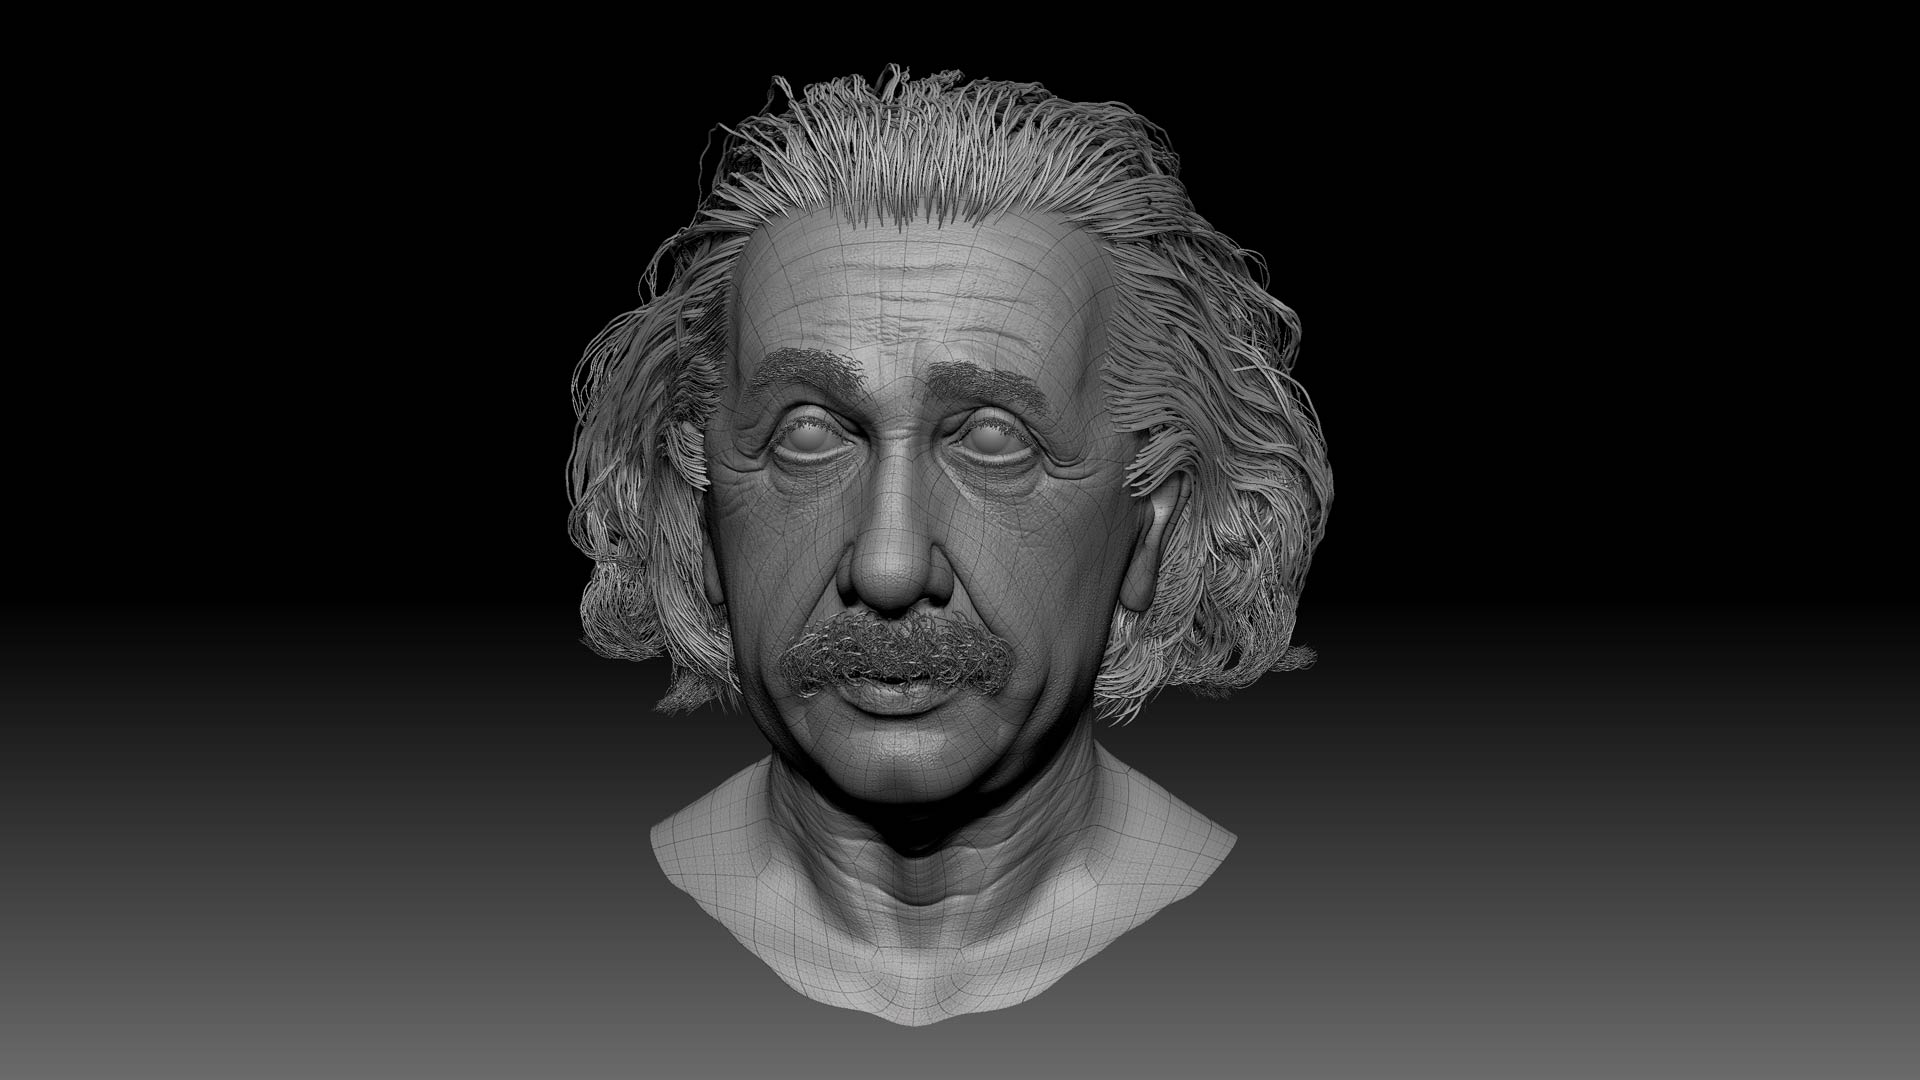 albert_einstein_zbrush_sculpting_model_head_character_wireframe Albert Einstein 3D Porträt für ein Hologram